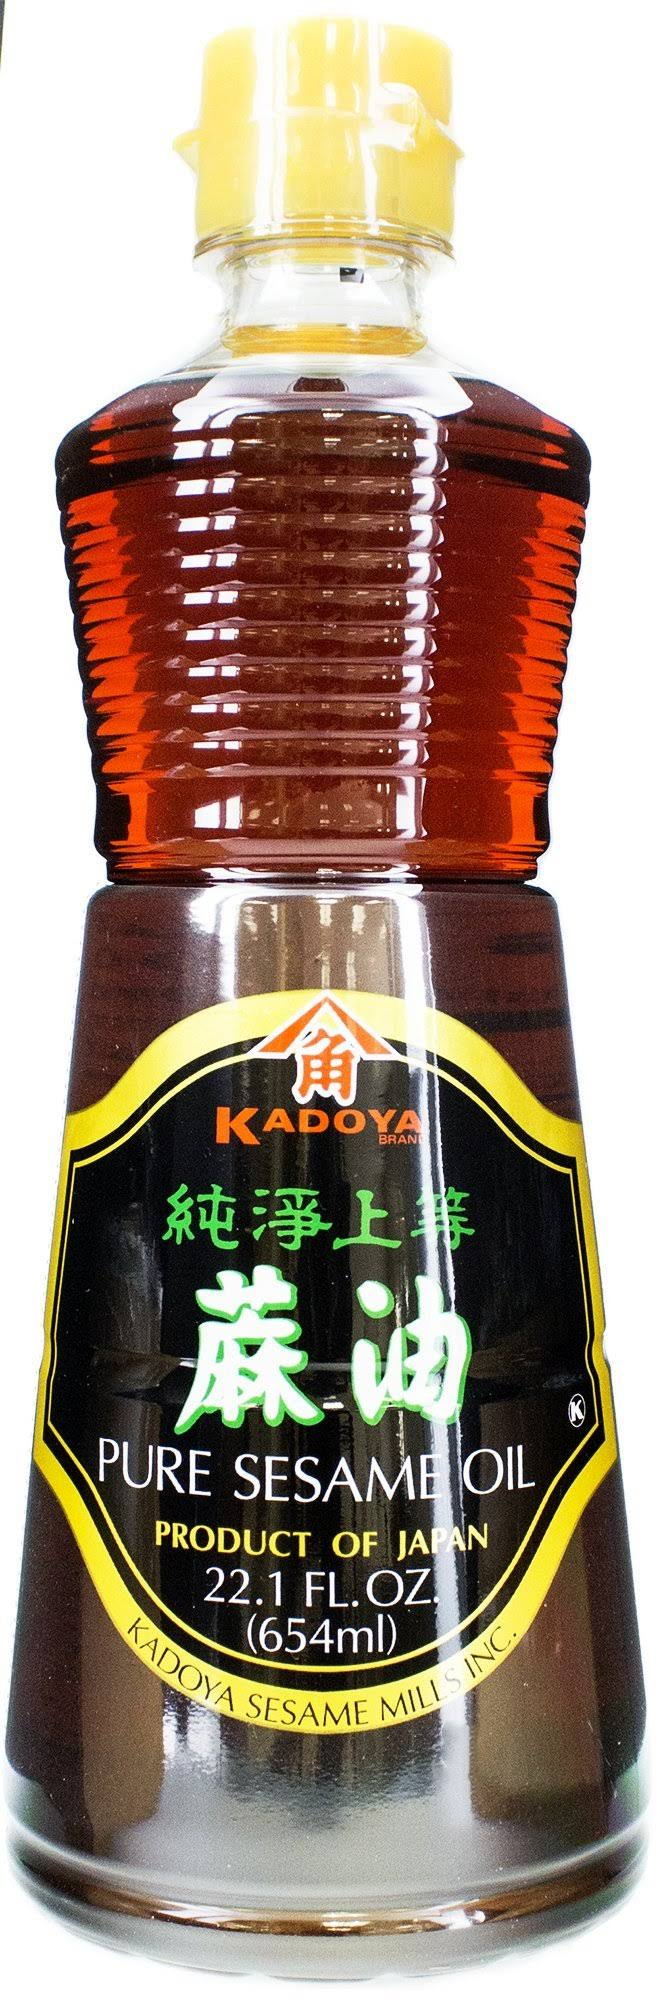 Kadoya Sesame Oil 22.10 Fluid Ounce